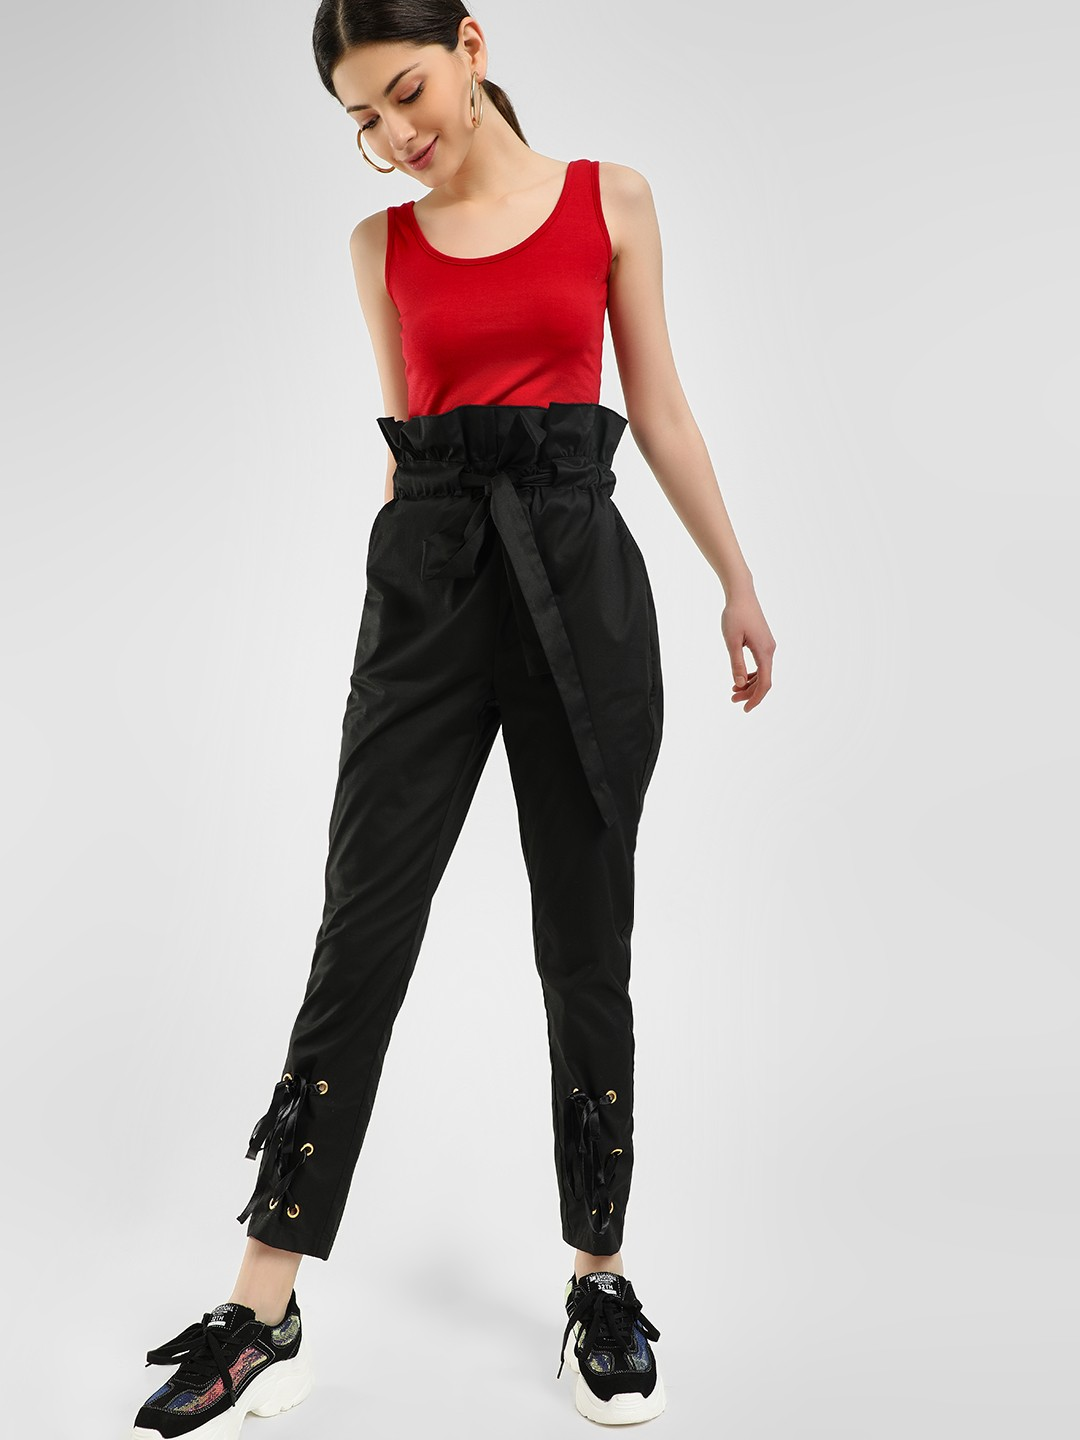 Ri-Dress Black Eyelet Detail Paperbag Waist Trousers 1